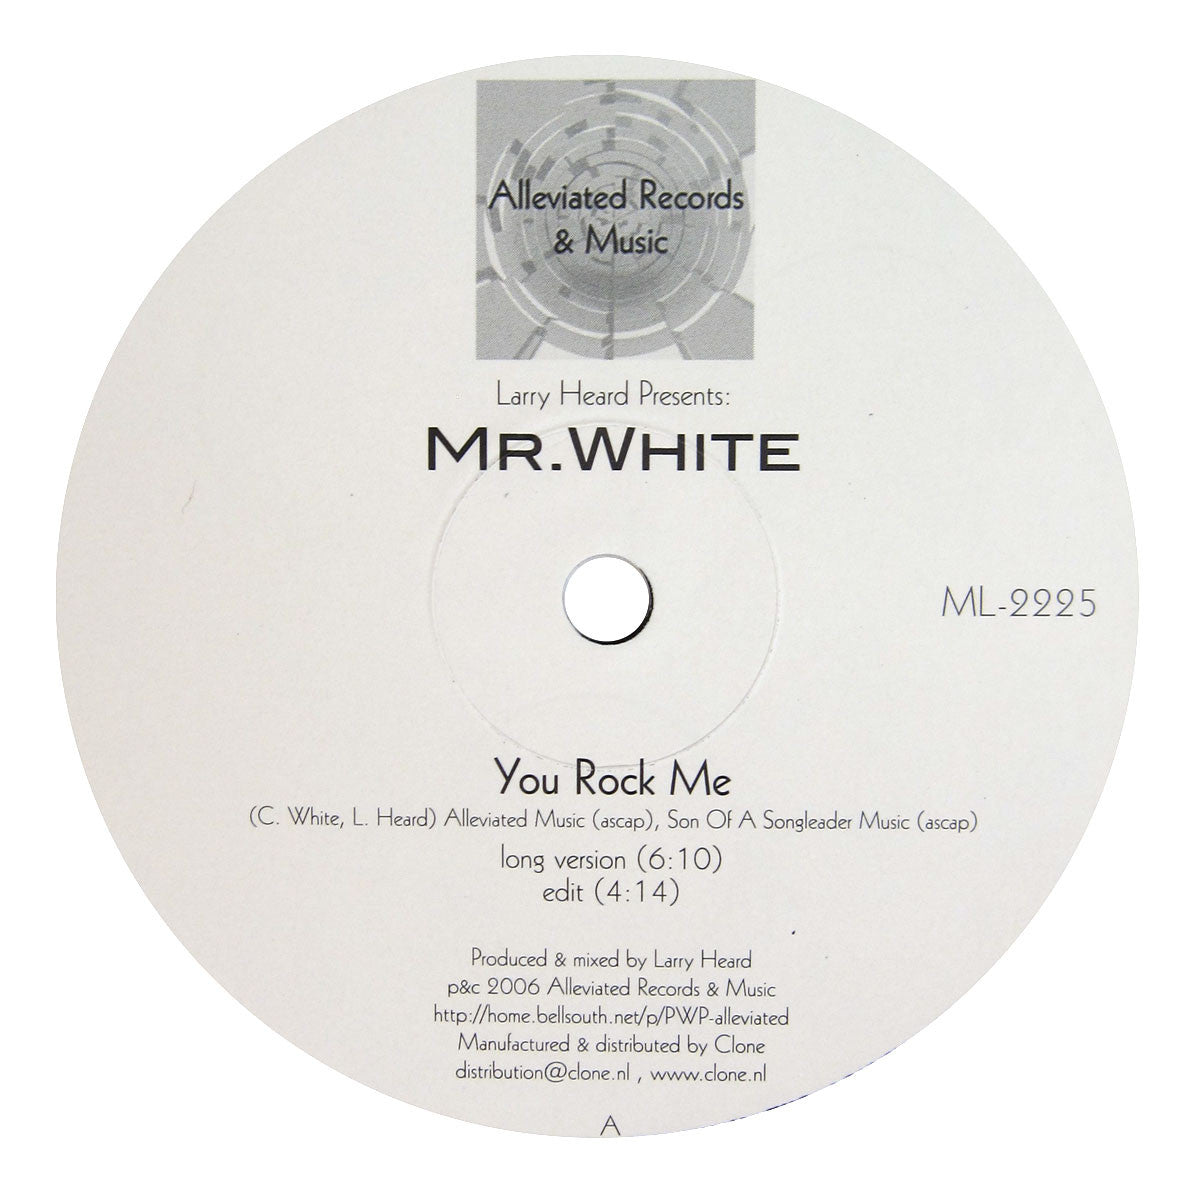 Larry Heard Presents Mr. White: You Rock Me / The Sun Can't Compare Vinyl 12""